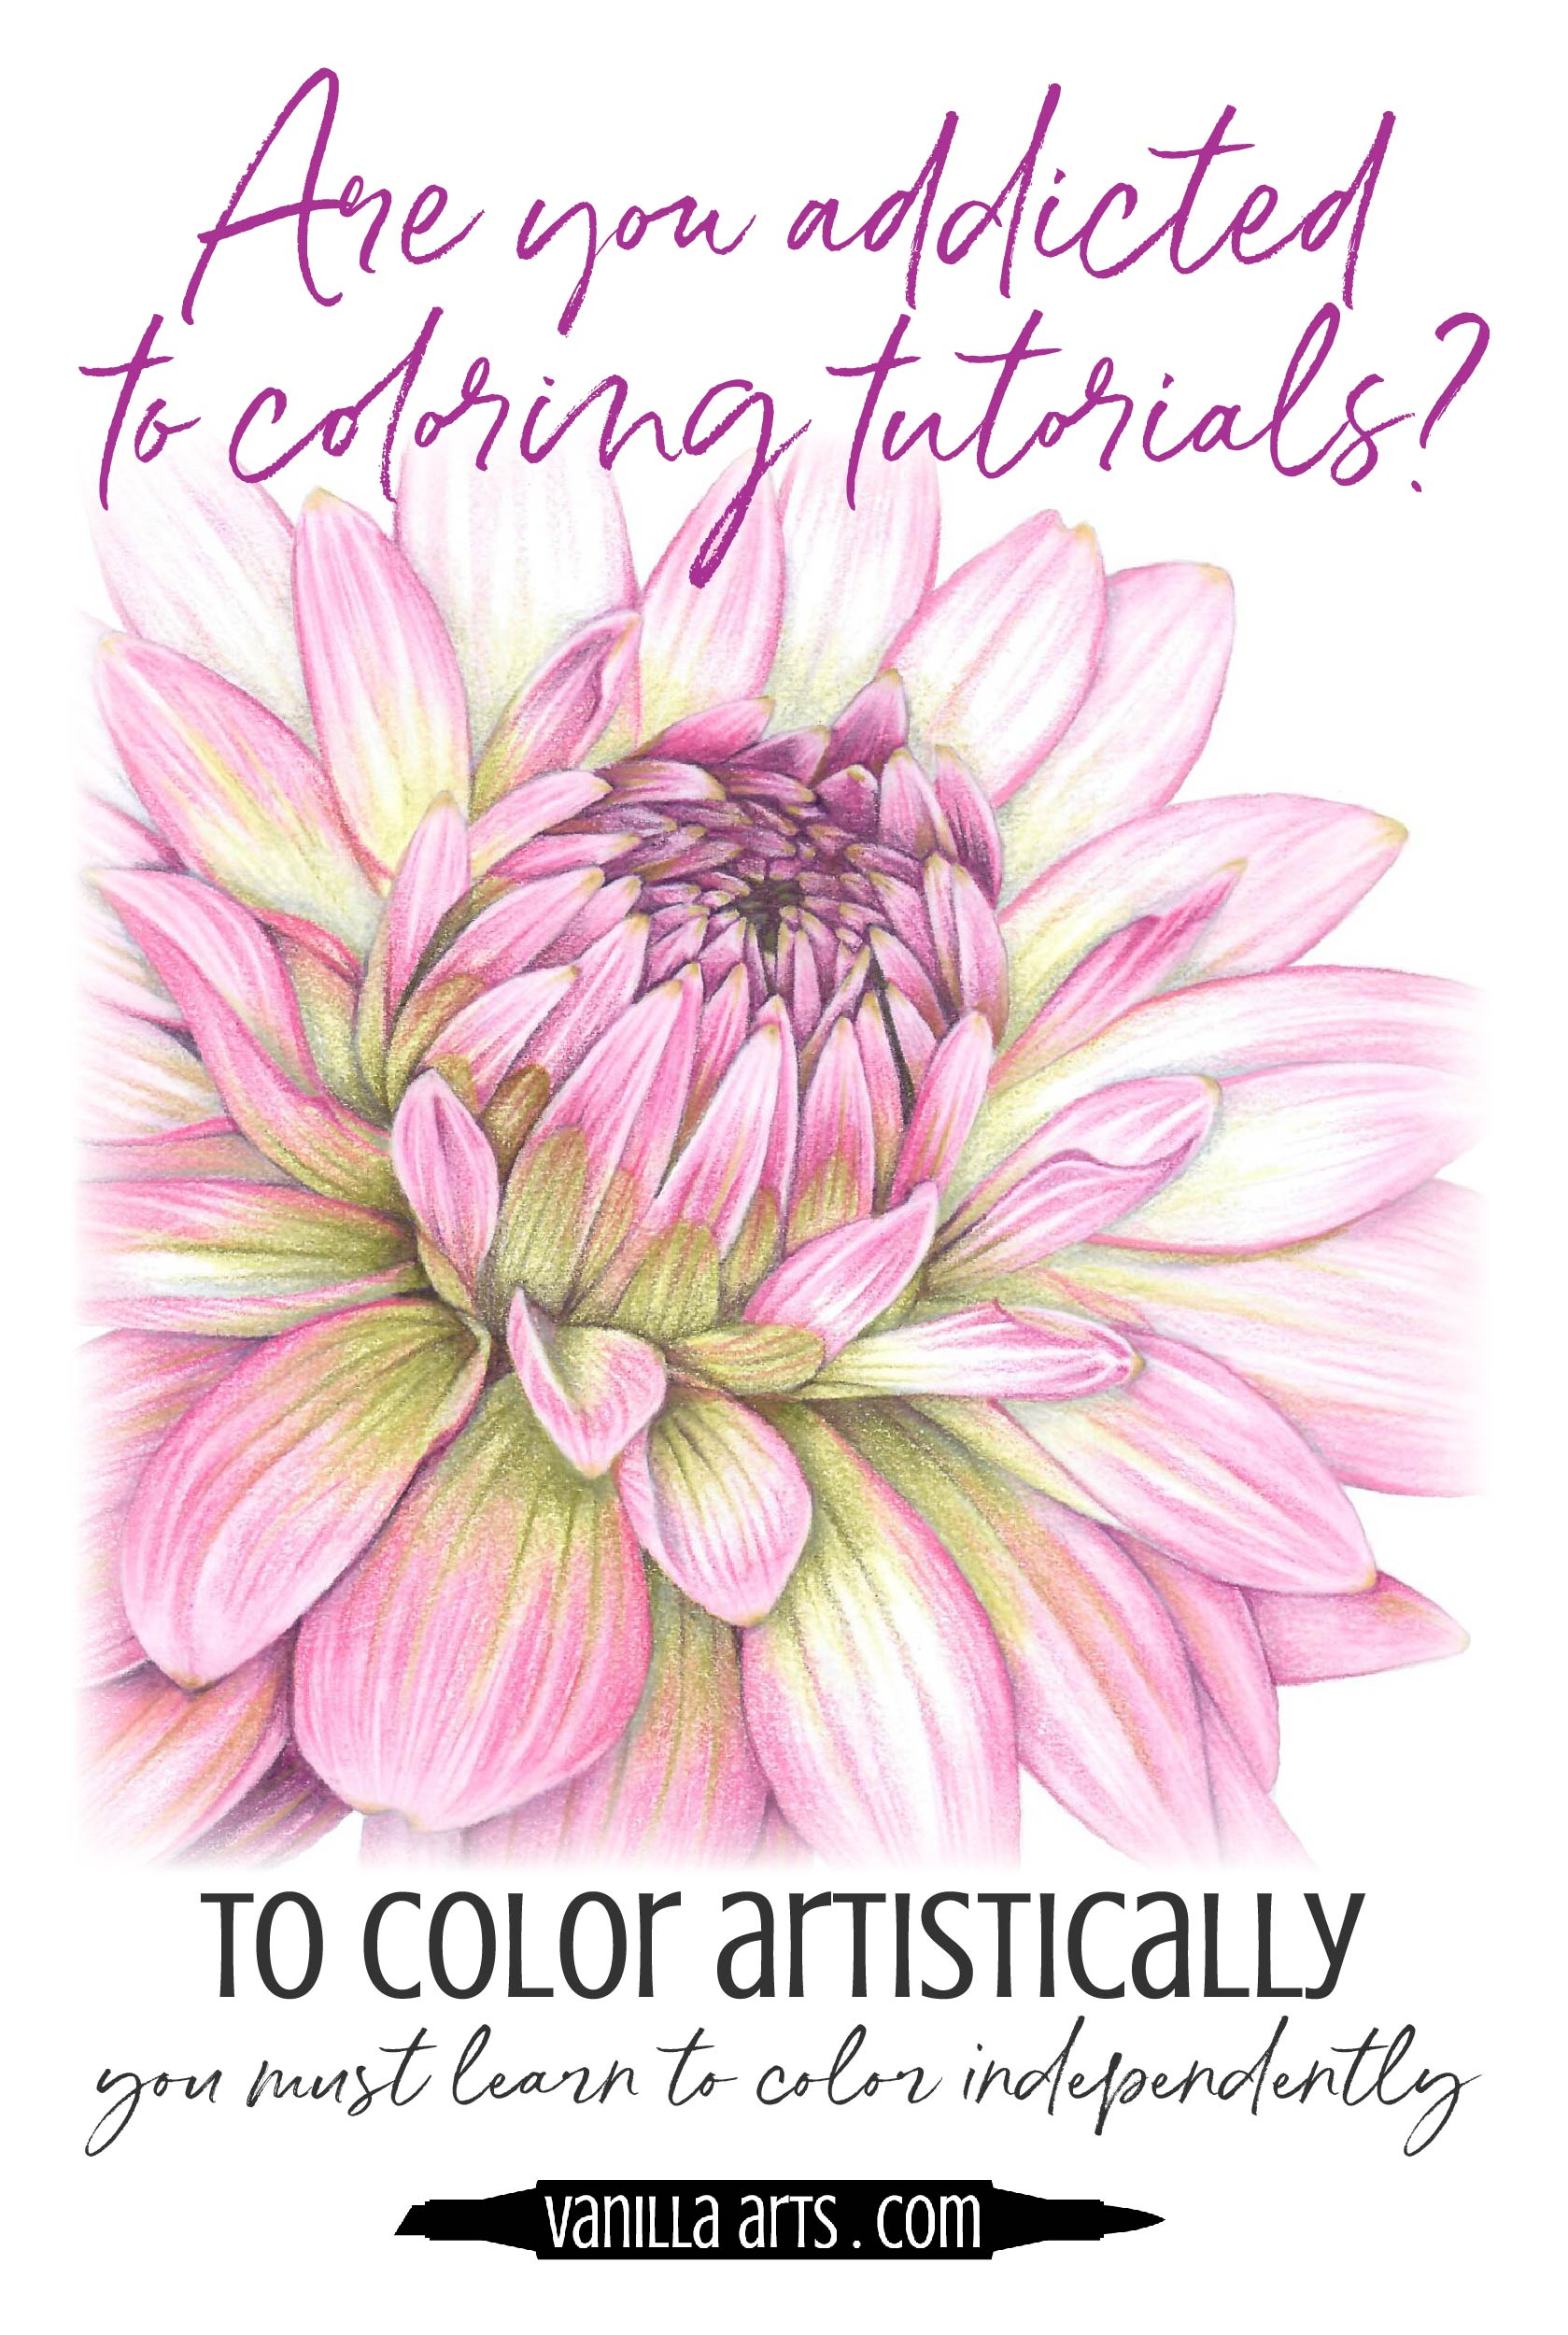 "Do you research ""how to color a ___"" before every Copic marker project? Until you learn to color independently without tutorials, you'll never get the artistry you want. 